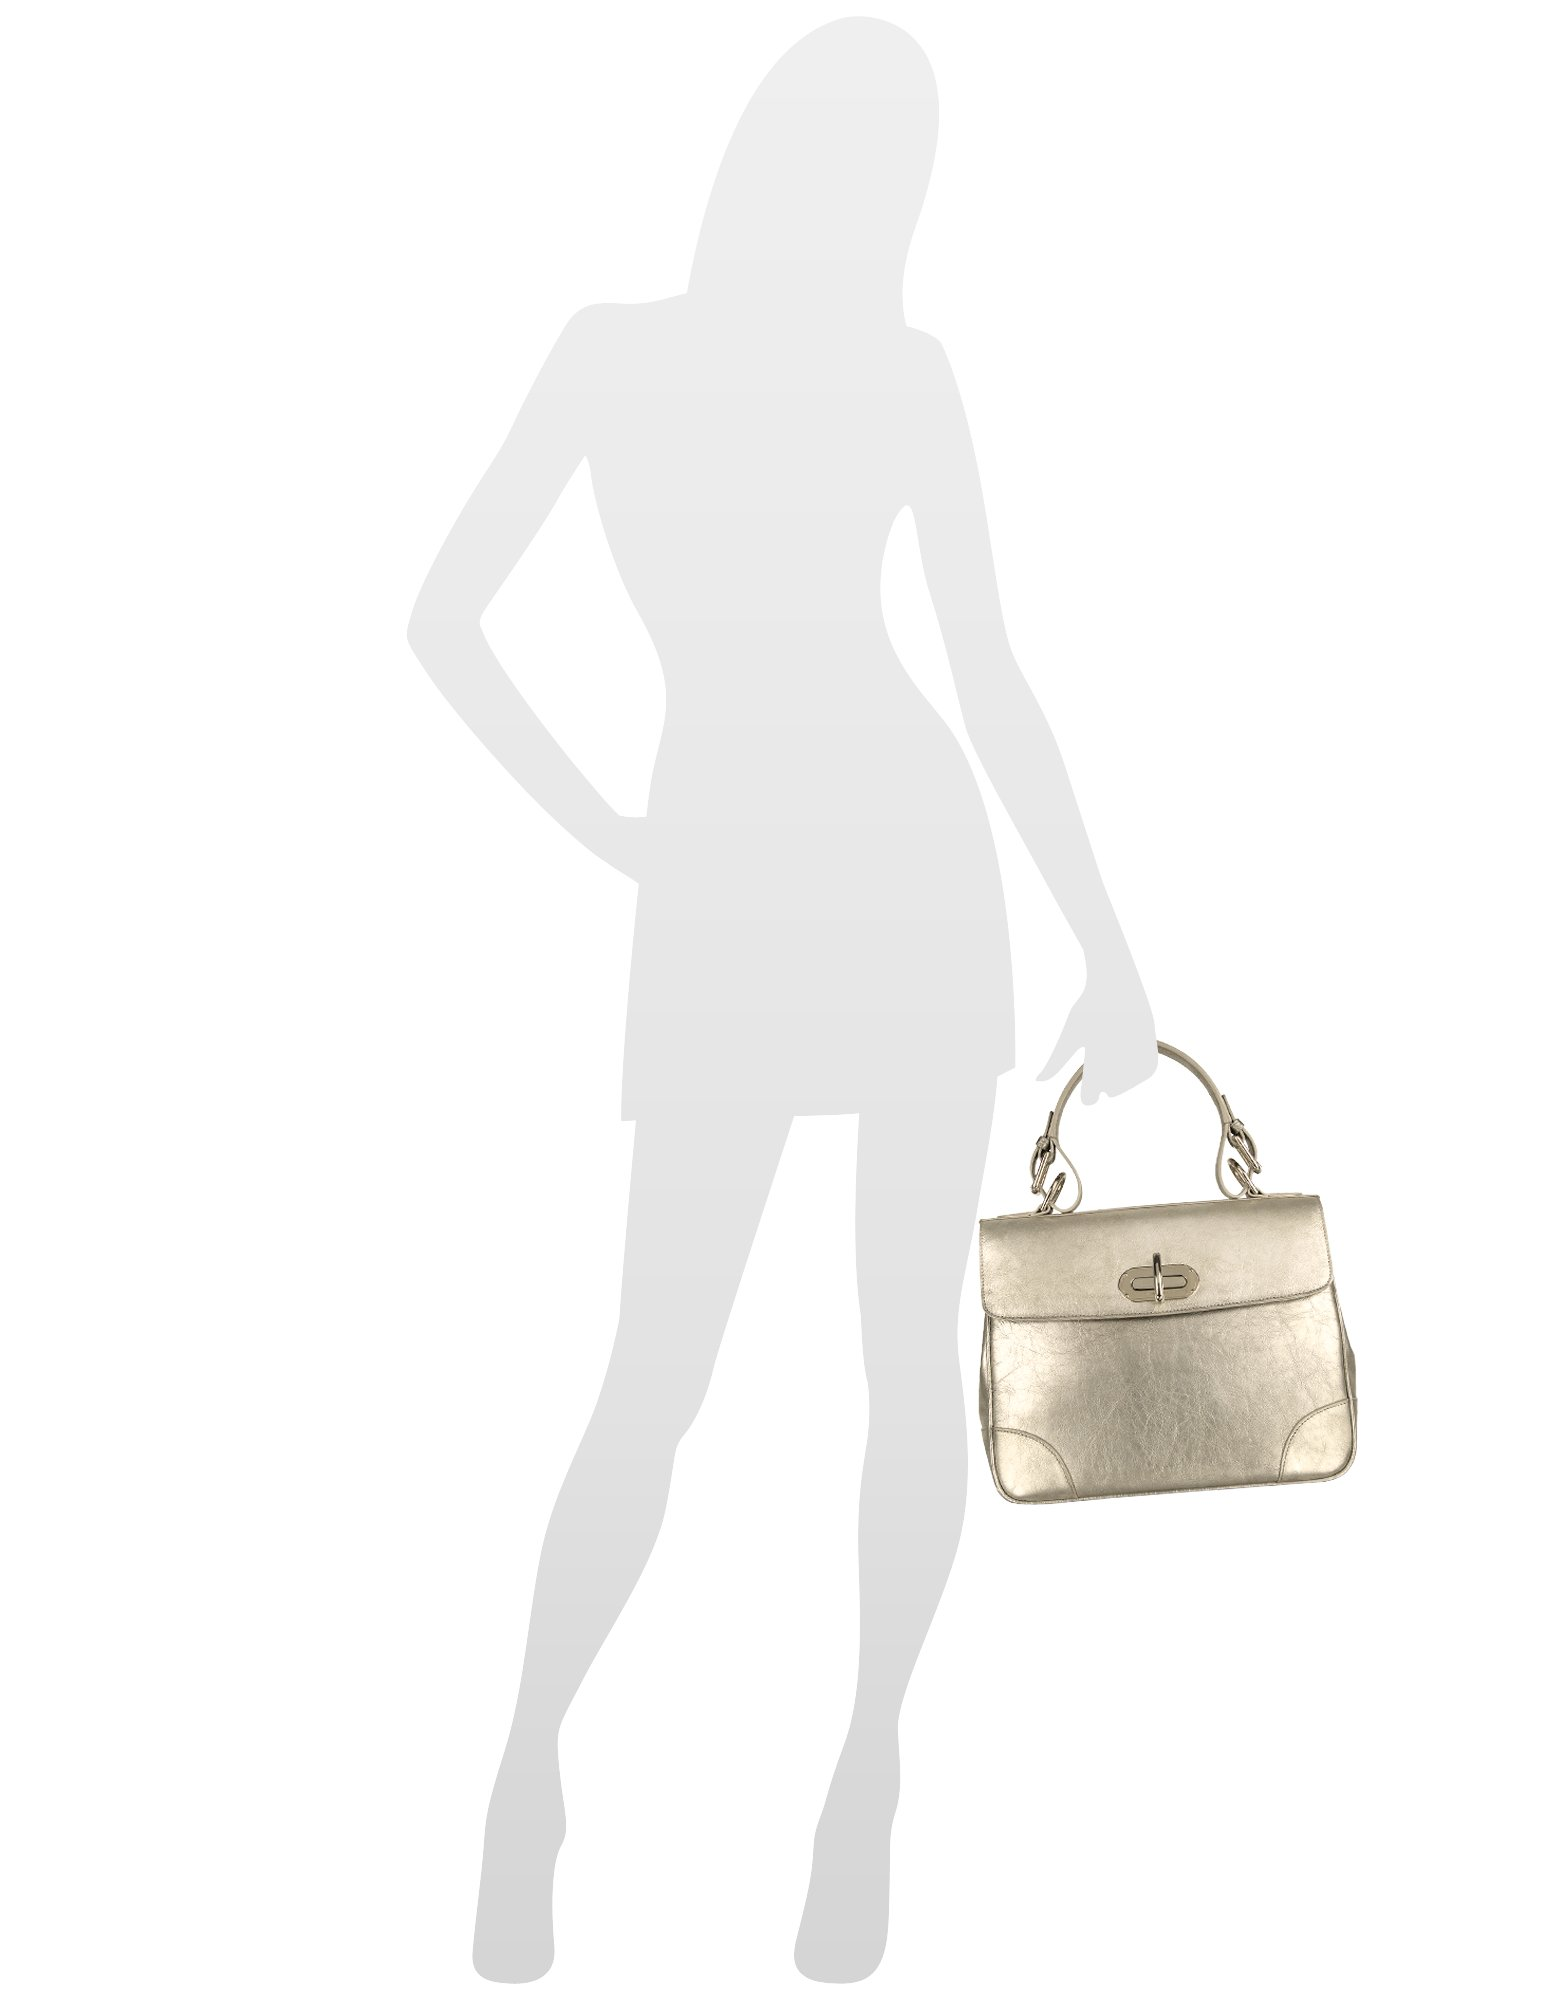 d0de754e05d5 Lyst - Ralph Lauren Collection Small Tiffin - Silver Leather Bag in ...